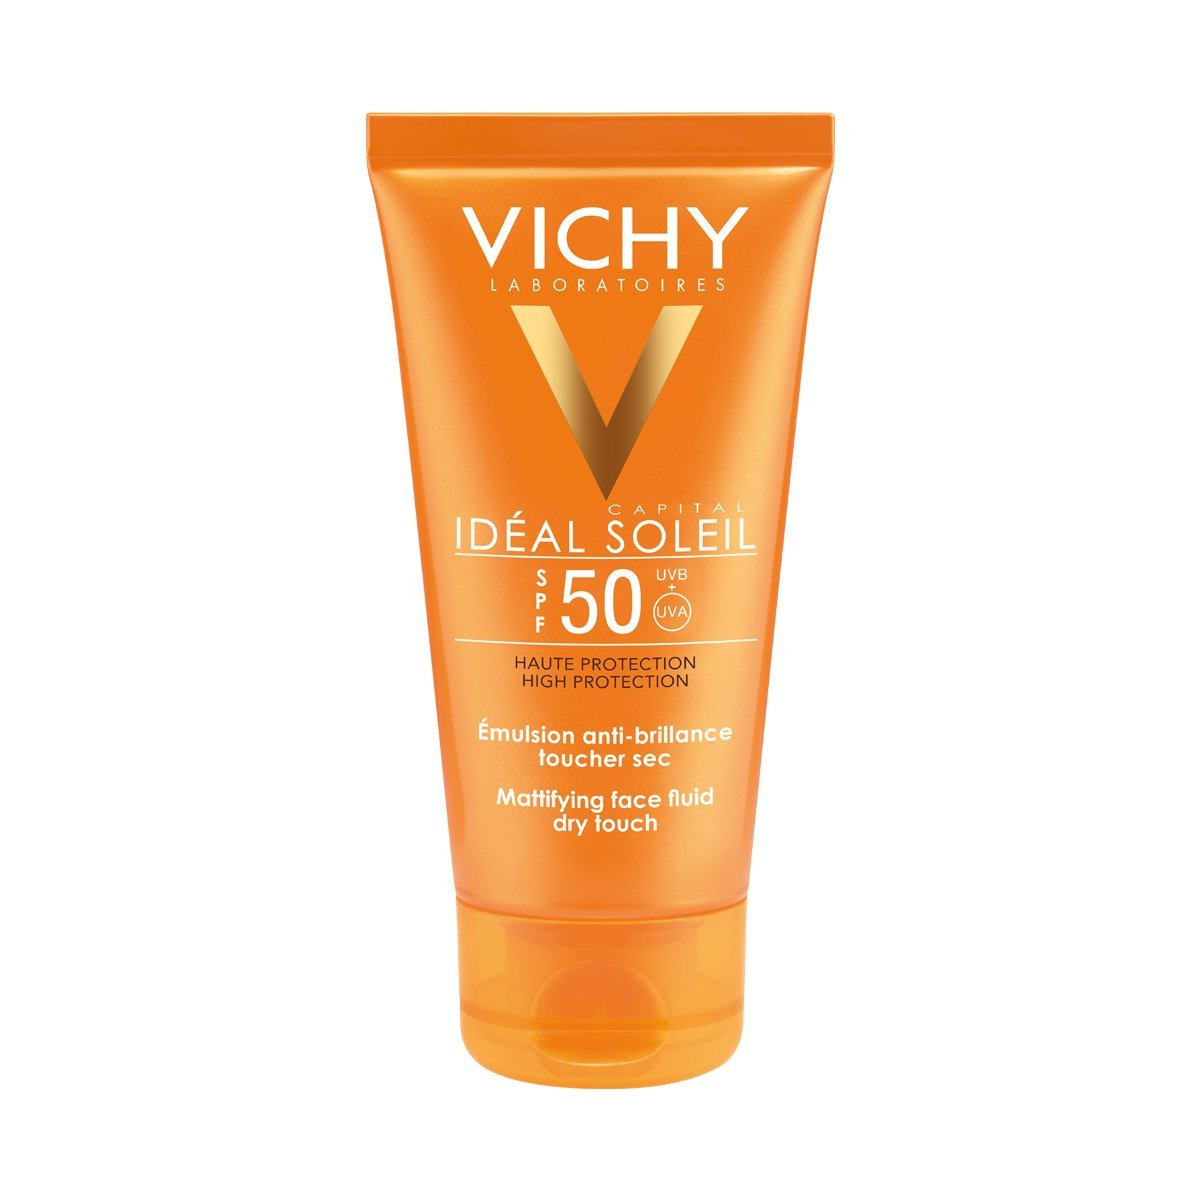 vichy-ideal-soleil-mattifying-face-fluid-dry-touch-%ce%bc%ce%b5-spf-50